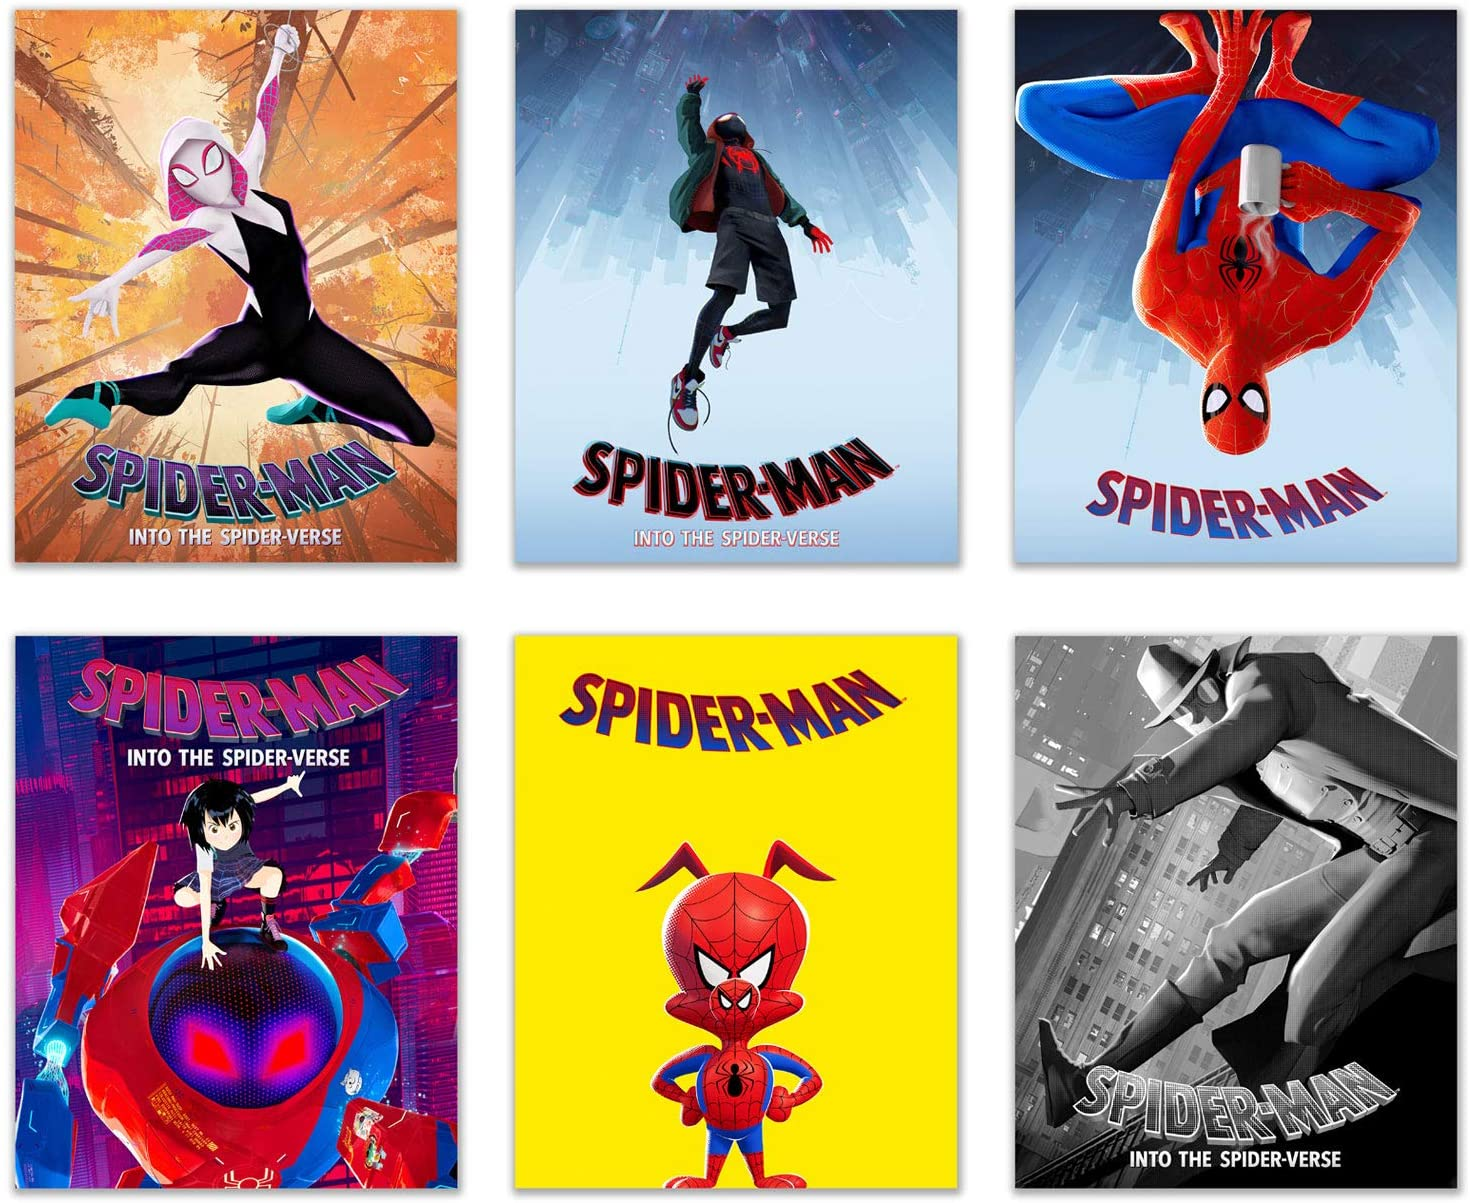 Spiderman into the Spiderverse Movie Prints - Set of 6 (8 inches x 10 inches) Photos